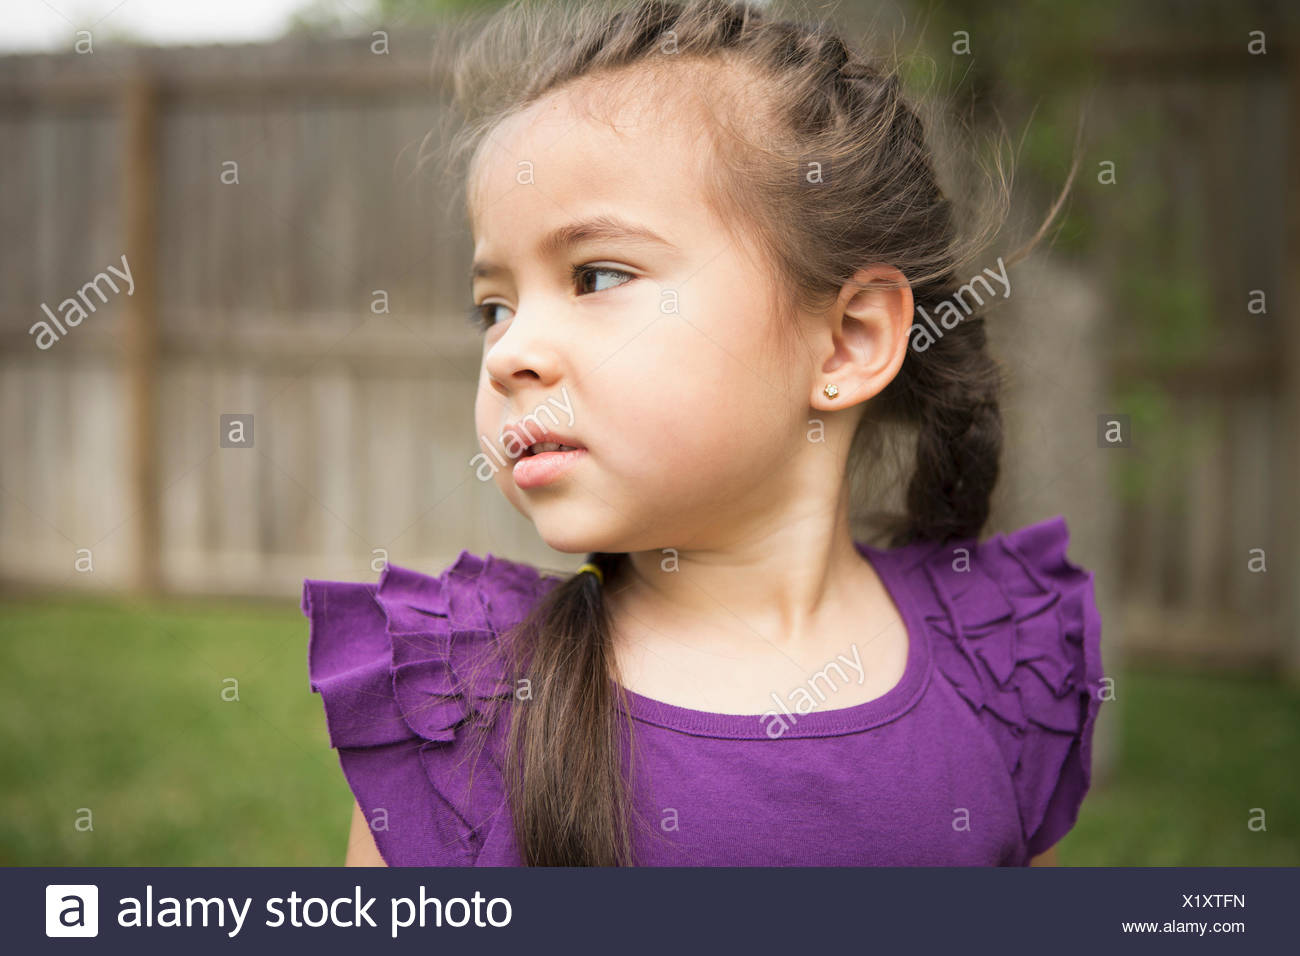 A young girl looking over her shoulder. - Stock Image